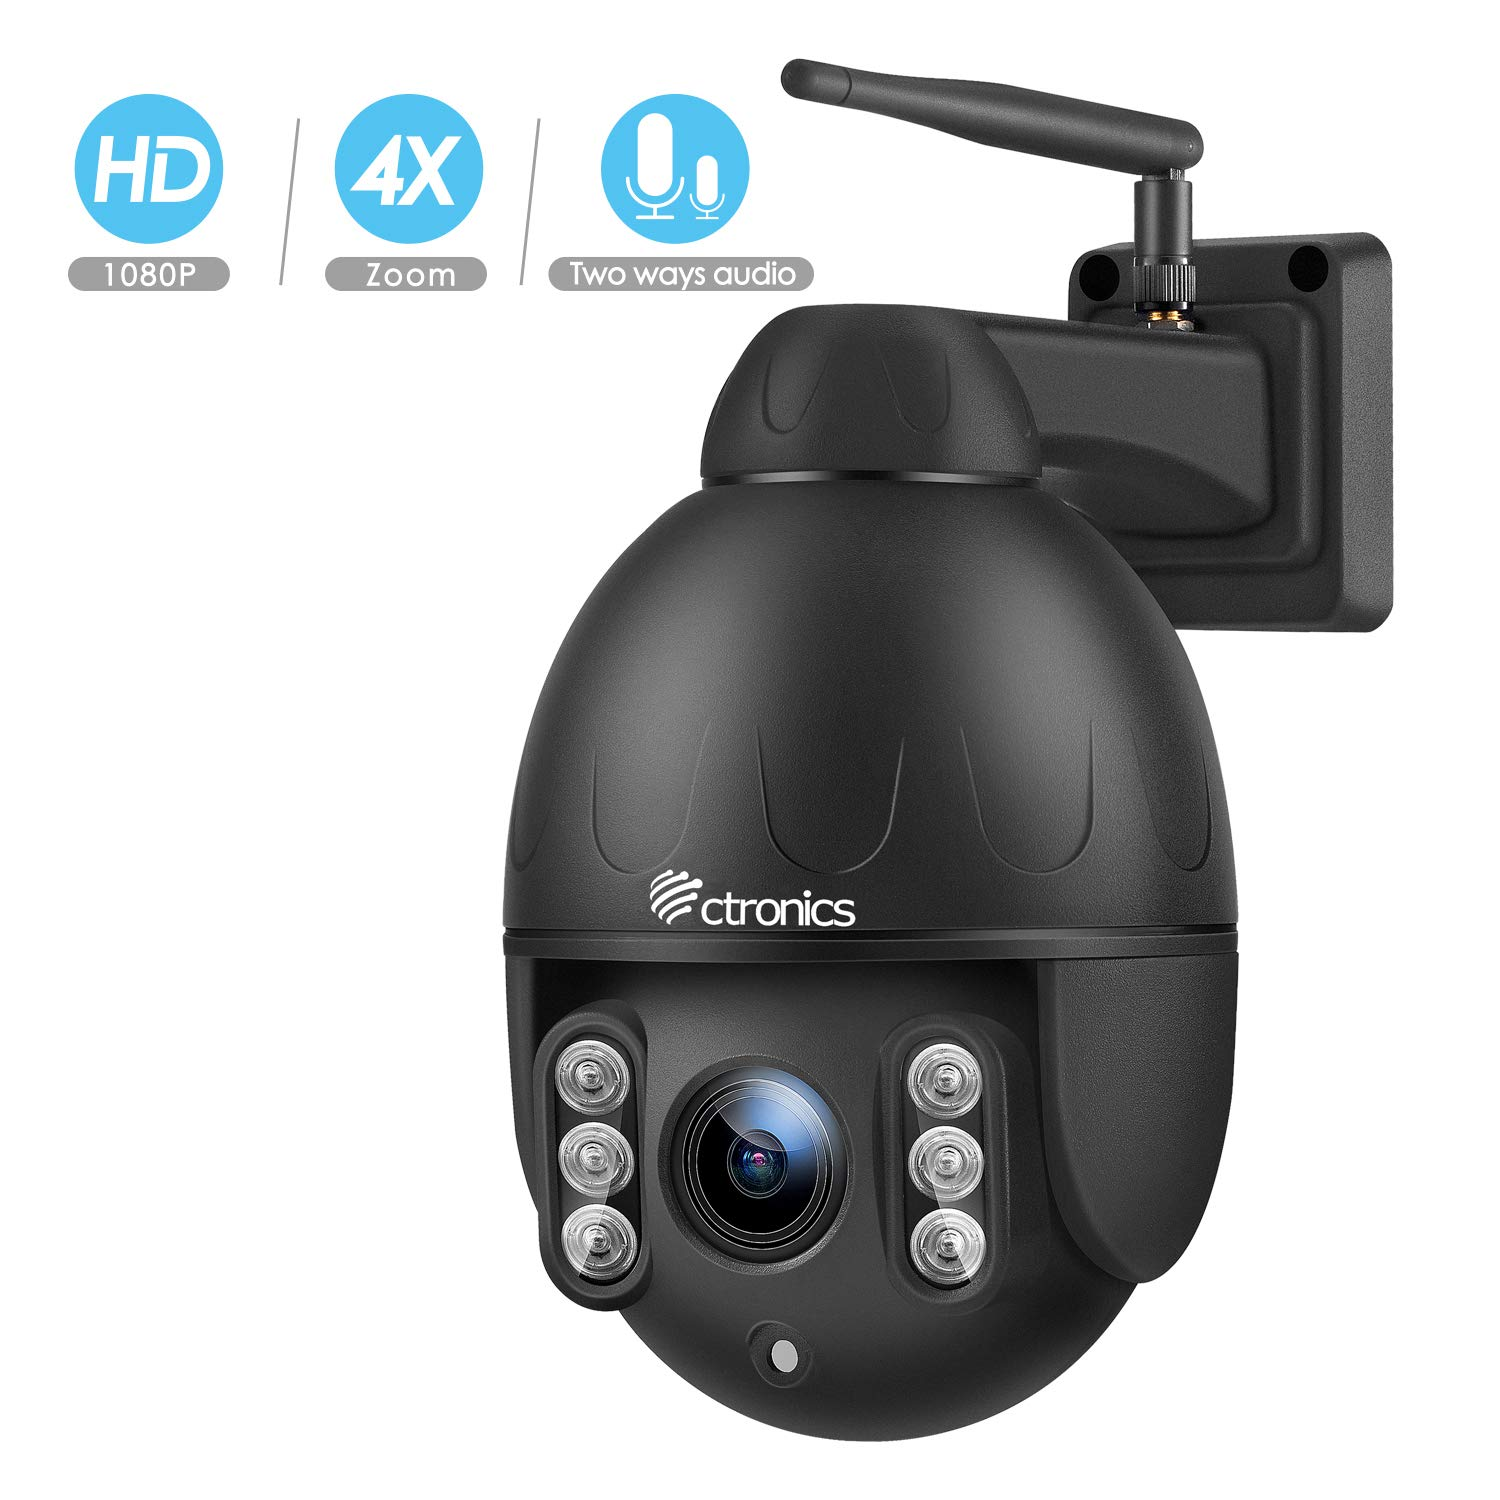 Ctronics PTZ Camera Outdoor,1080P WiFi Security IP Camera, 355 Pan 120 Tilt 4X Optical Zoom, Instant Notification of Motion Detection,165ft Night Vision, Black